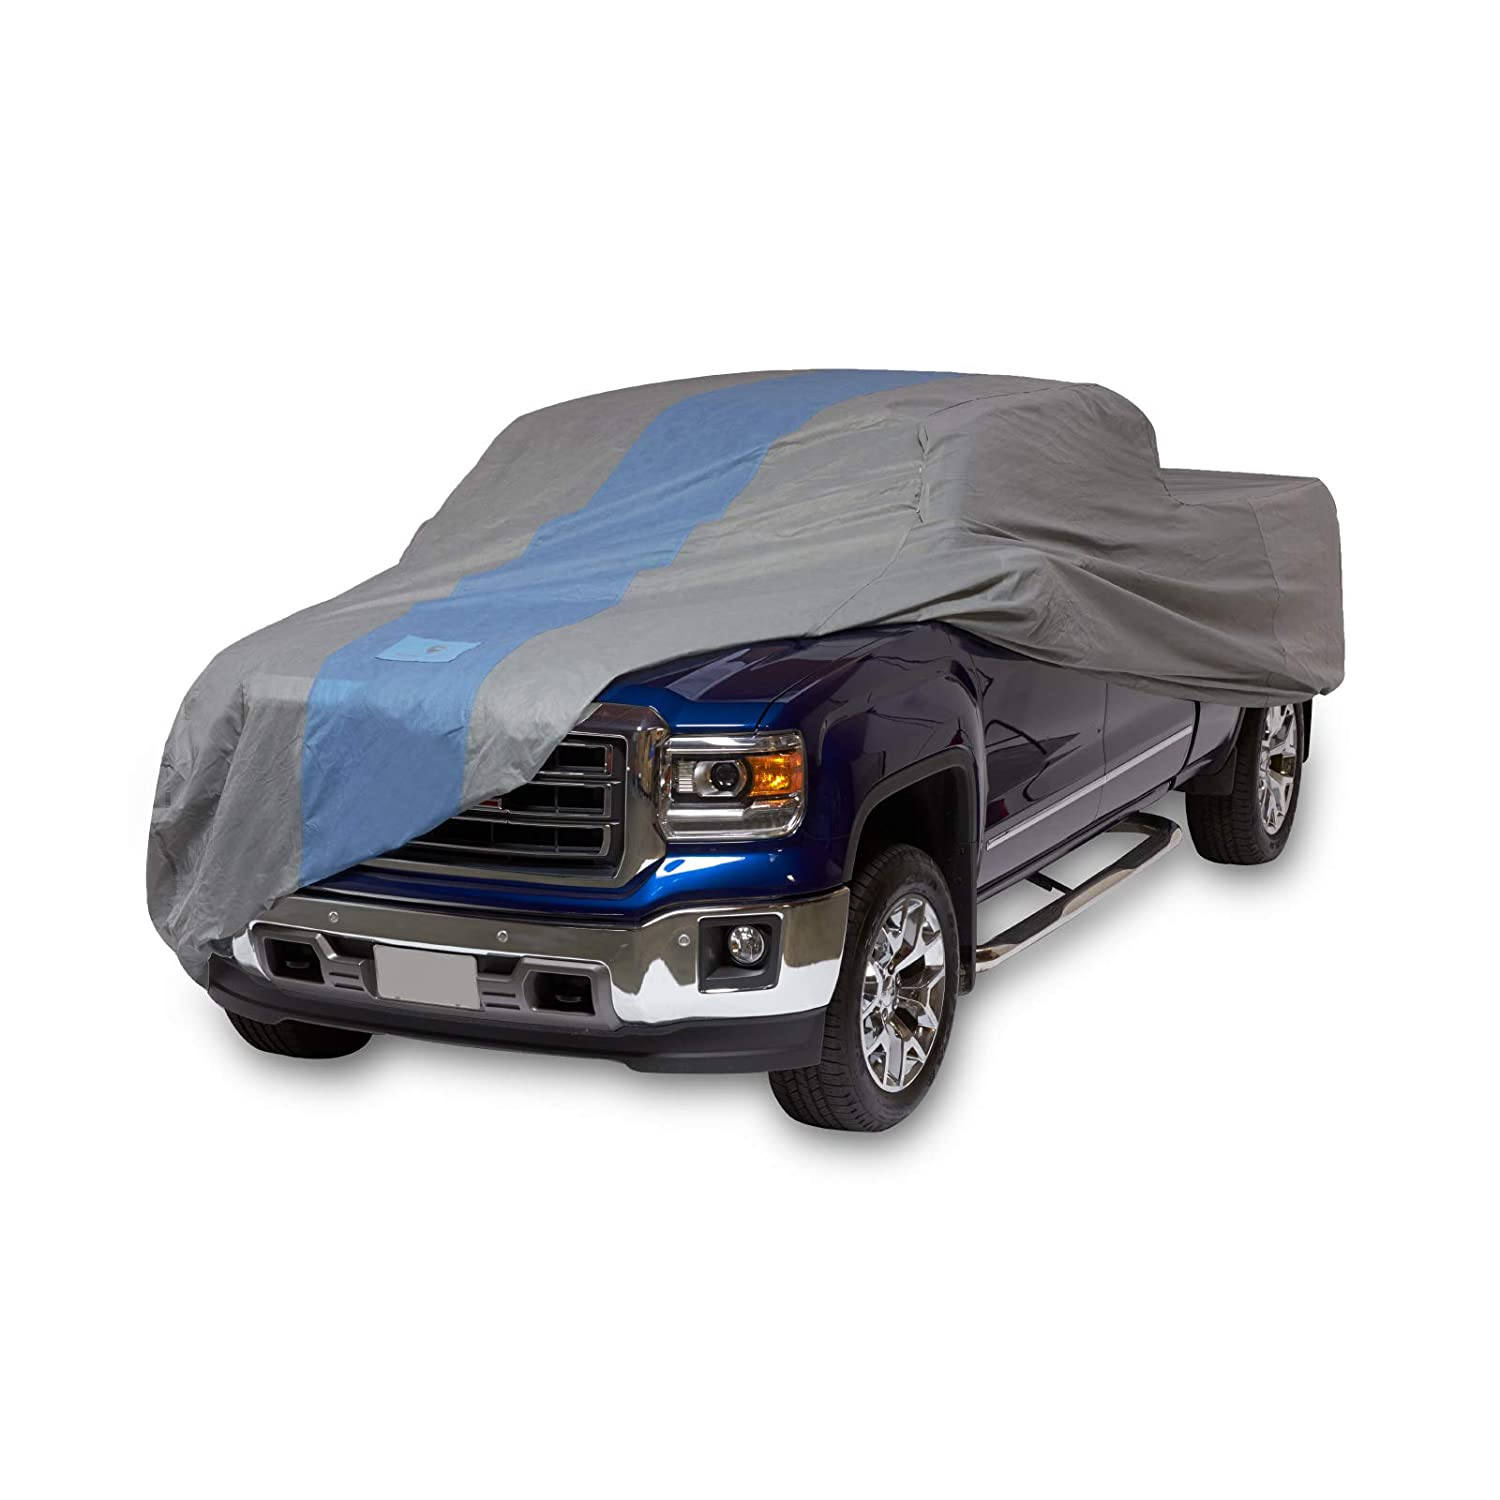 Duck Covers A1T232 Defender Pickup Truck Cover for Extended Cab Short Bed Trucks up to 19' 4'